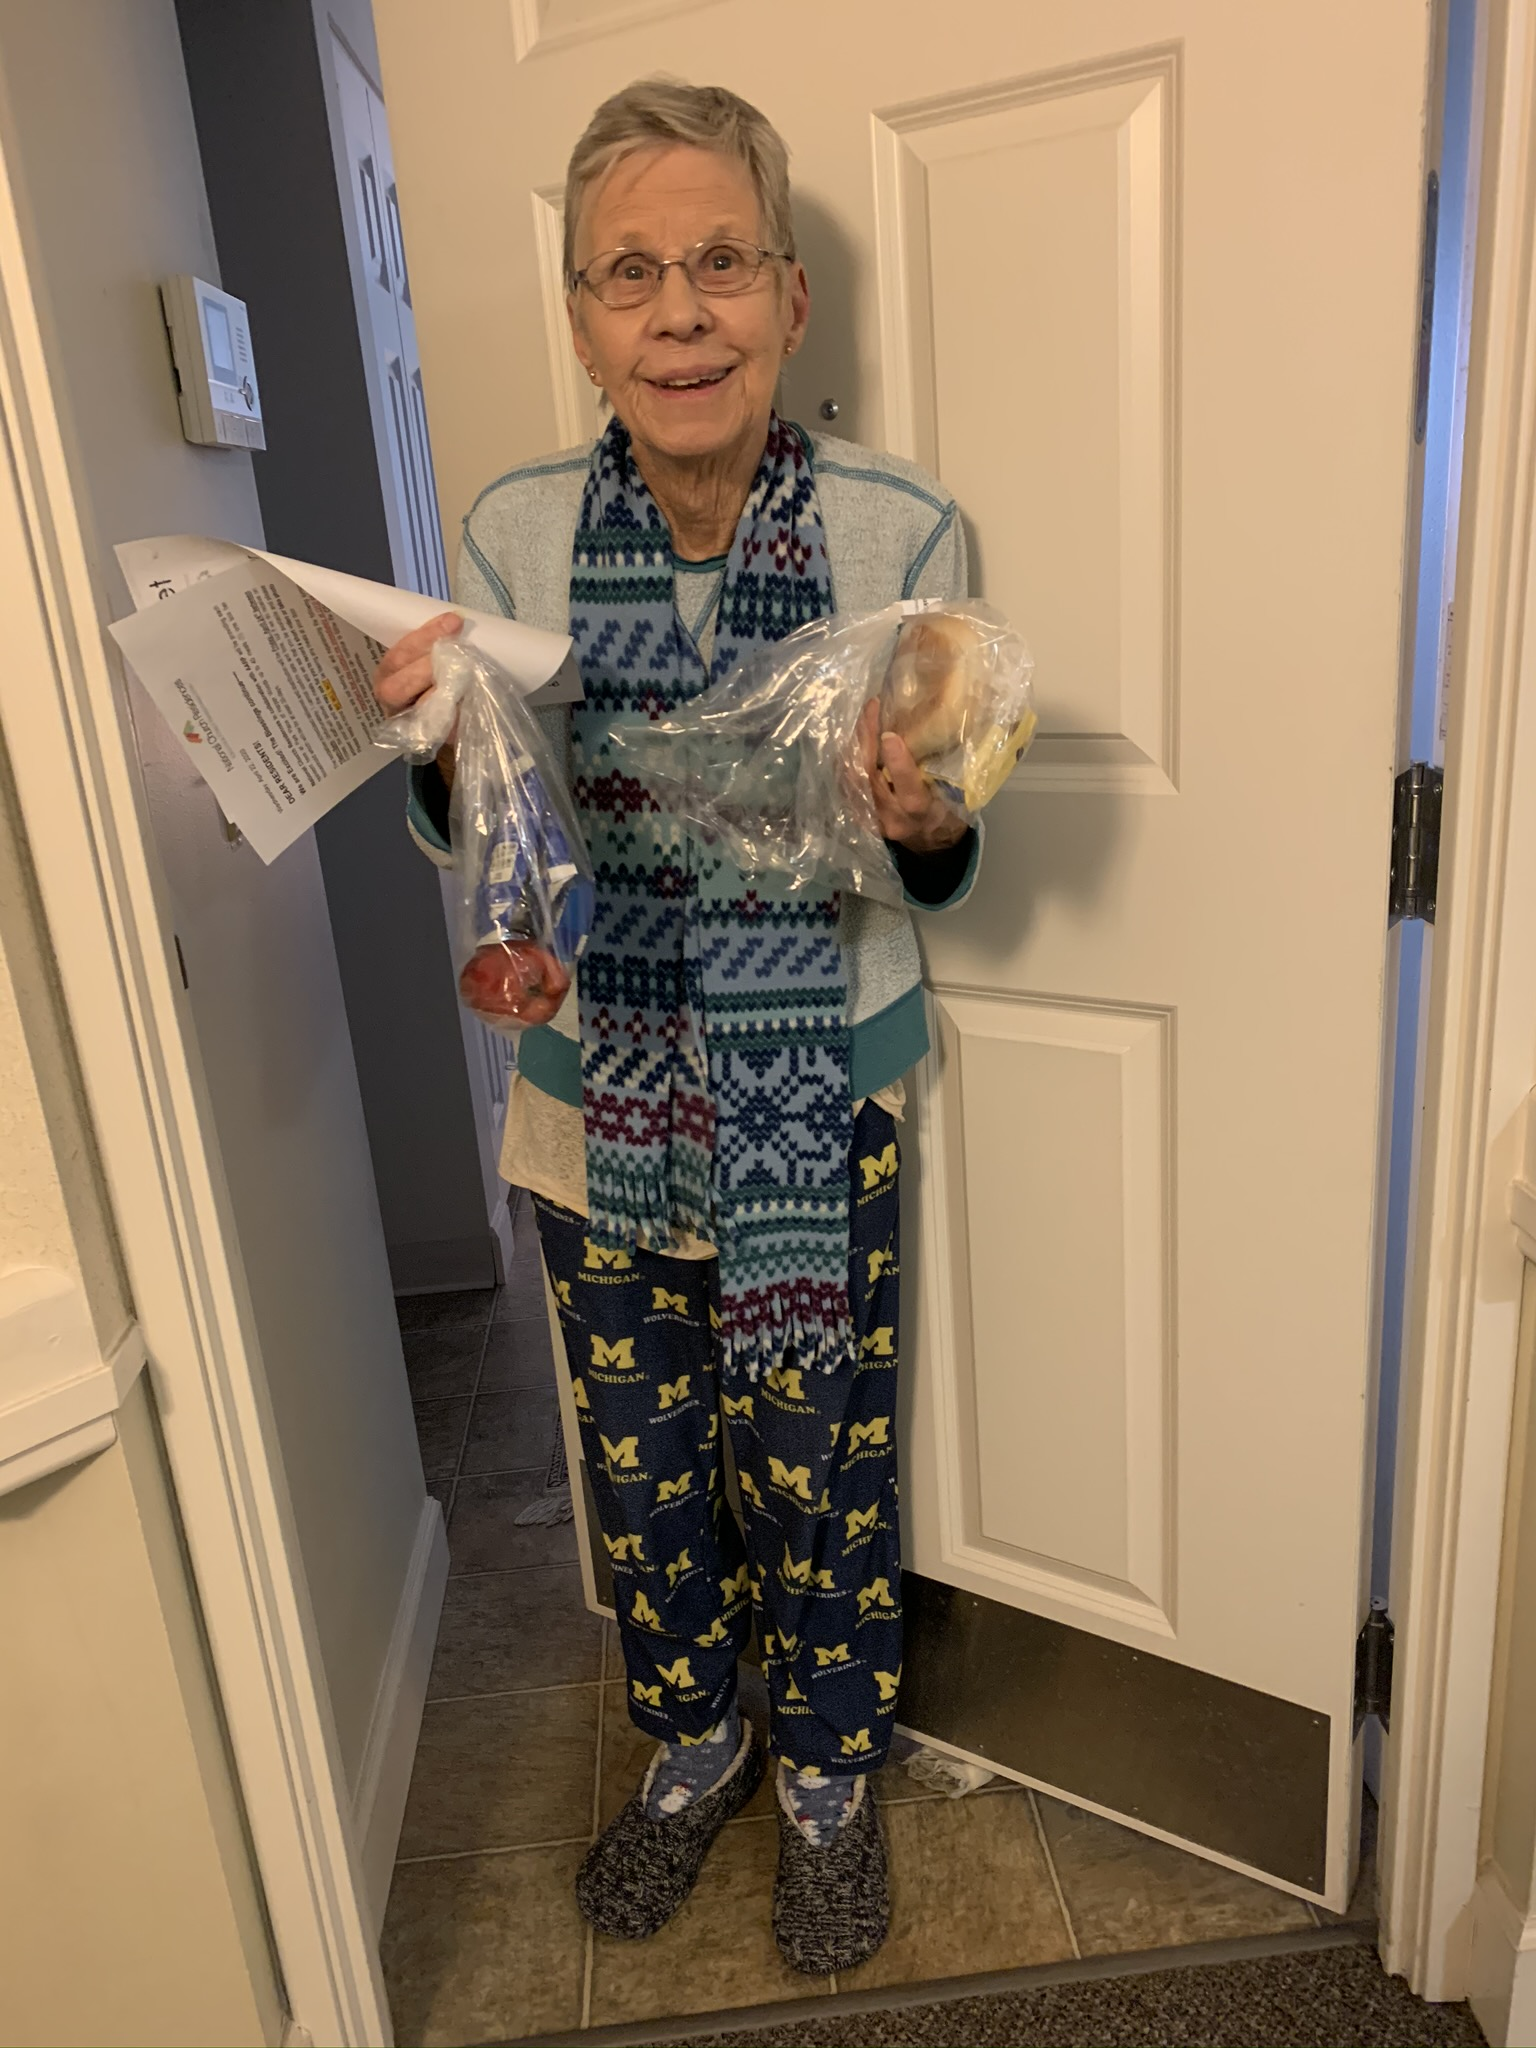 An older woman standing in front of her door holding papers and a bag with food